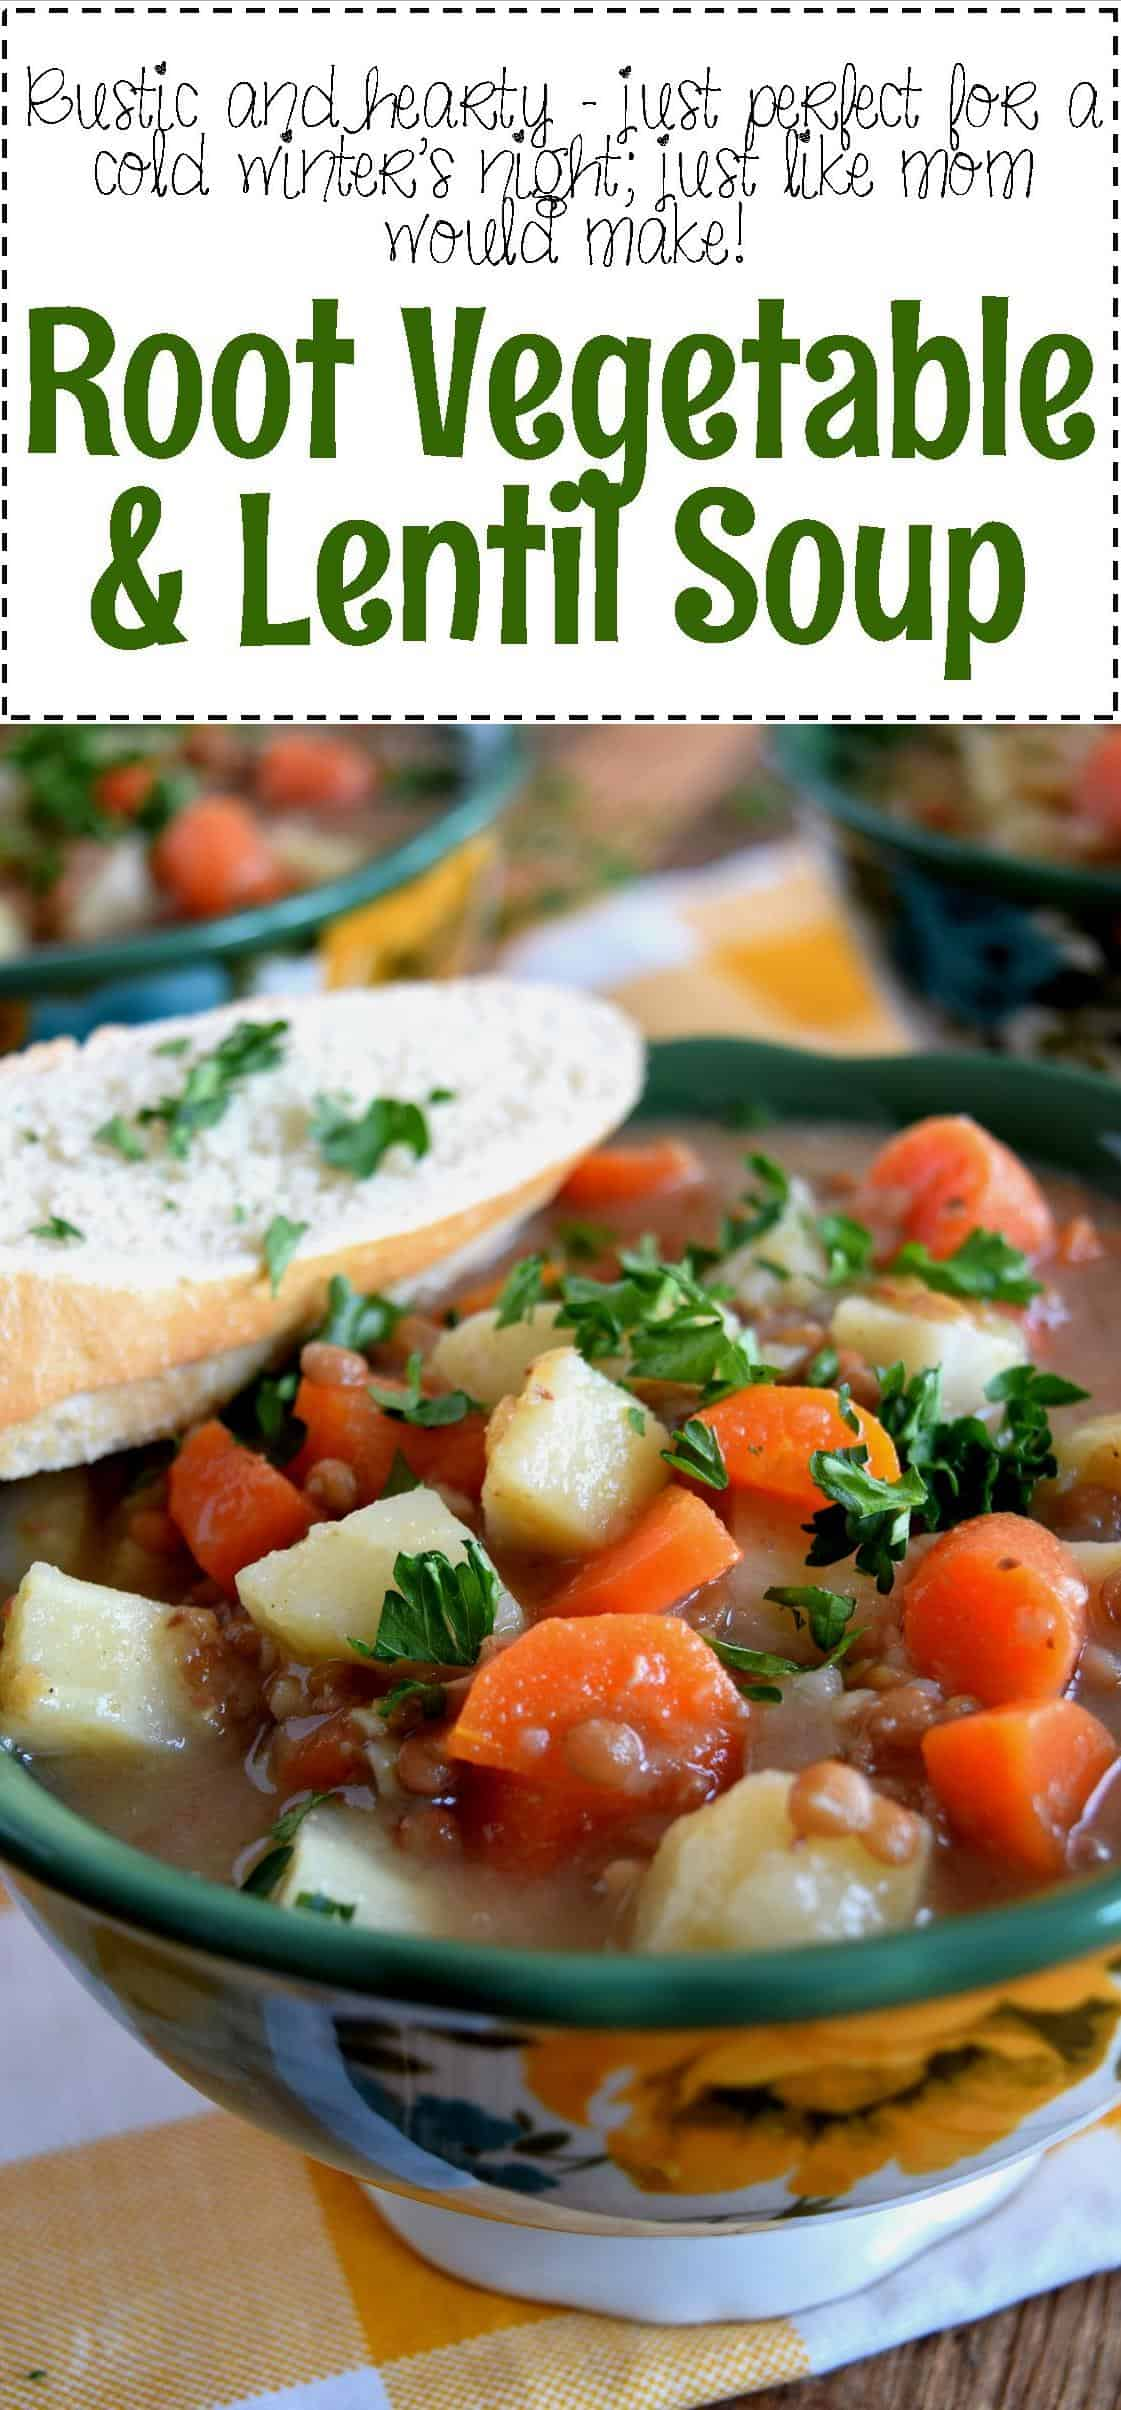 Root Vegetable and Lentil Soup - Lord Byron's Kitchen